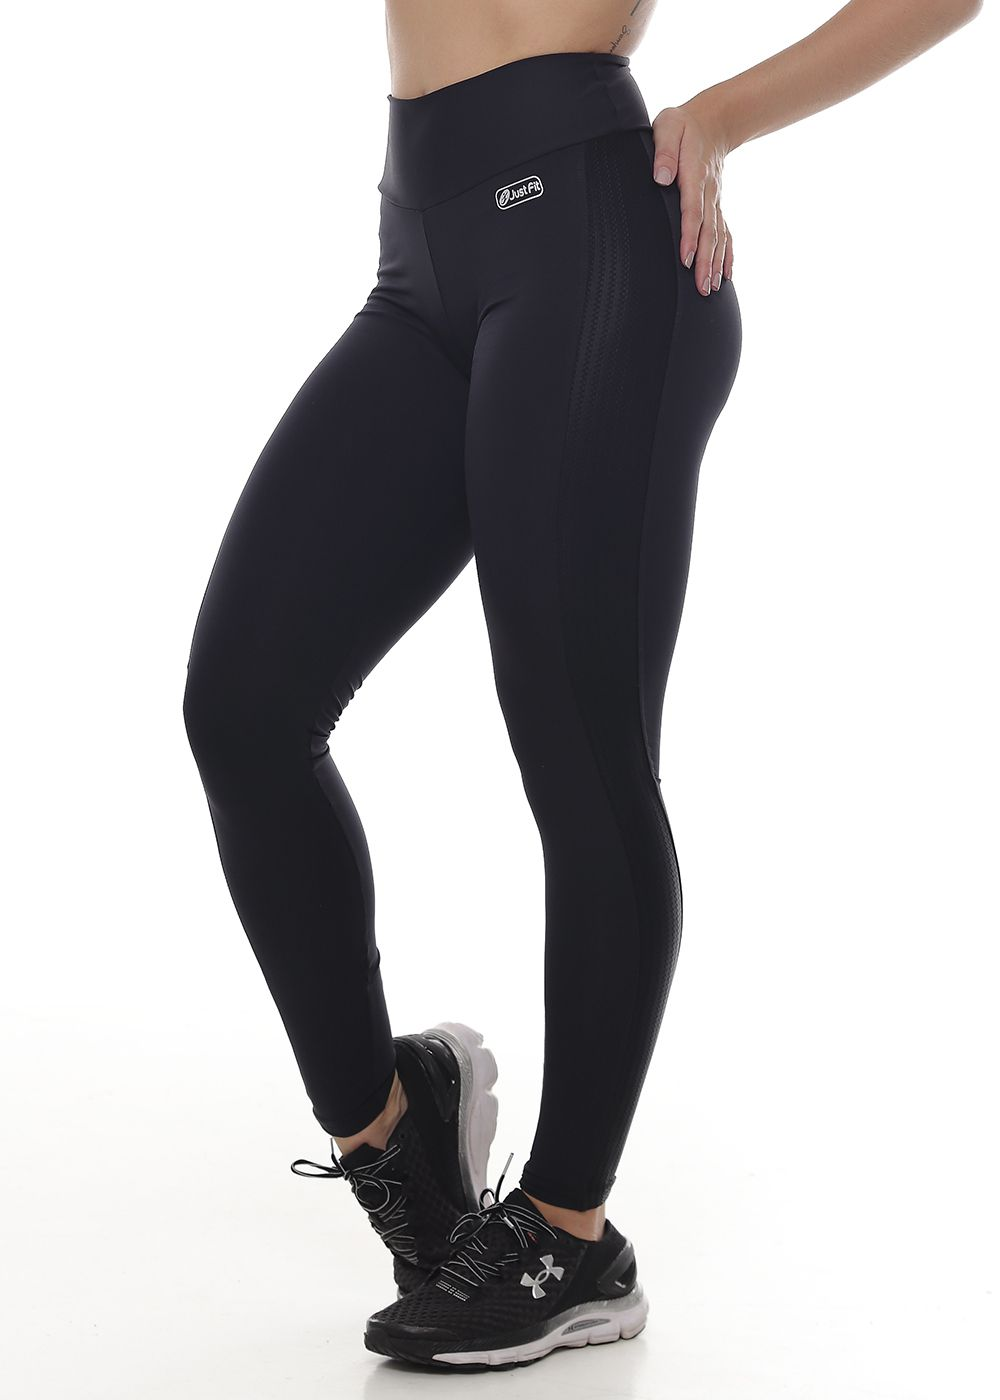 CALÇA FUSÔ BLACK ULTIMATE FEMININA JUST FIT - PRETO